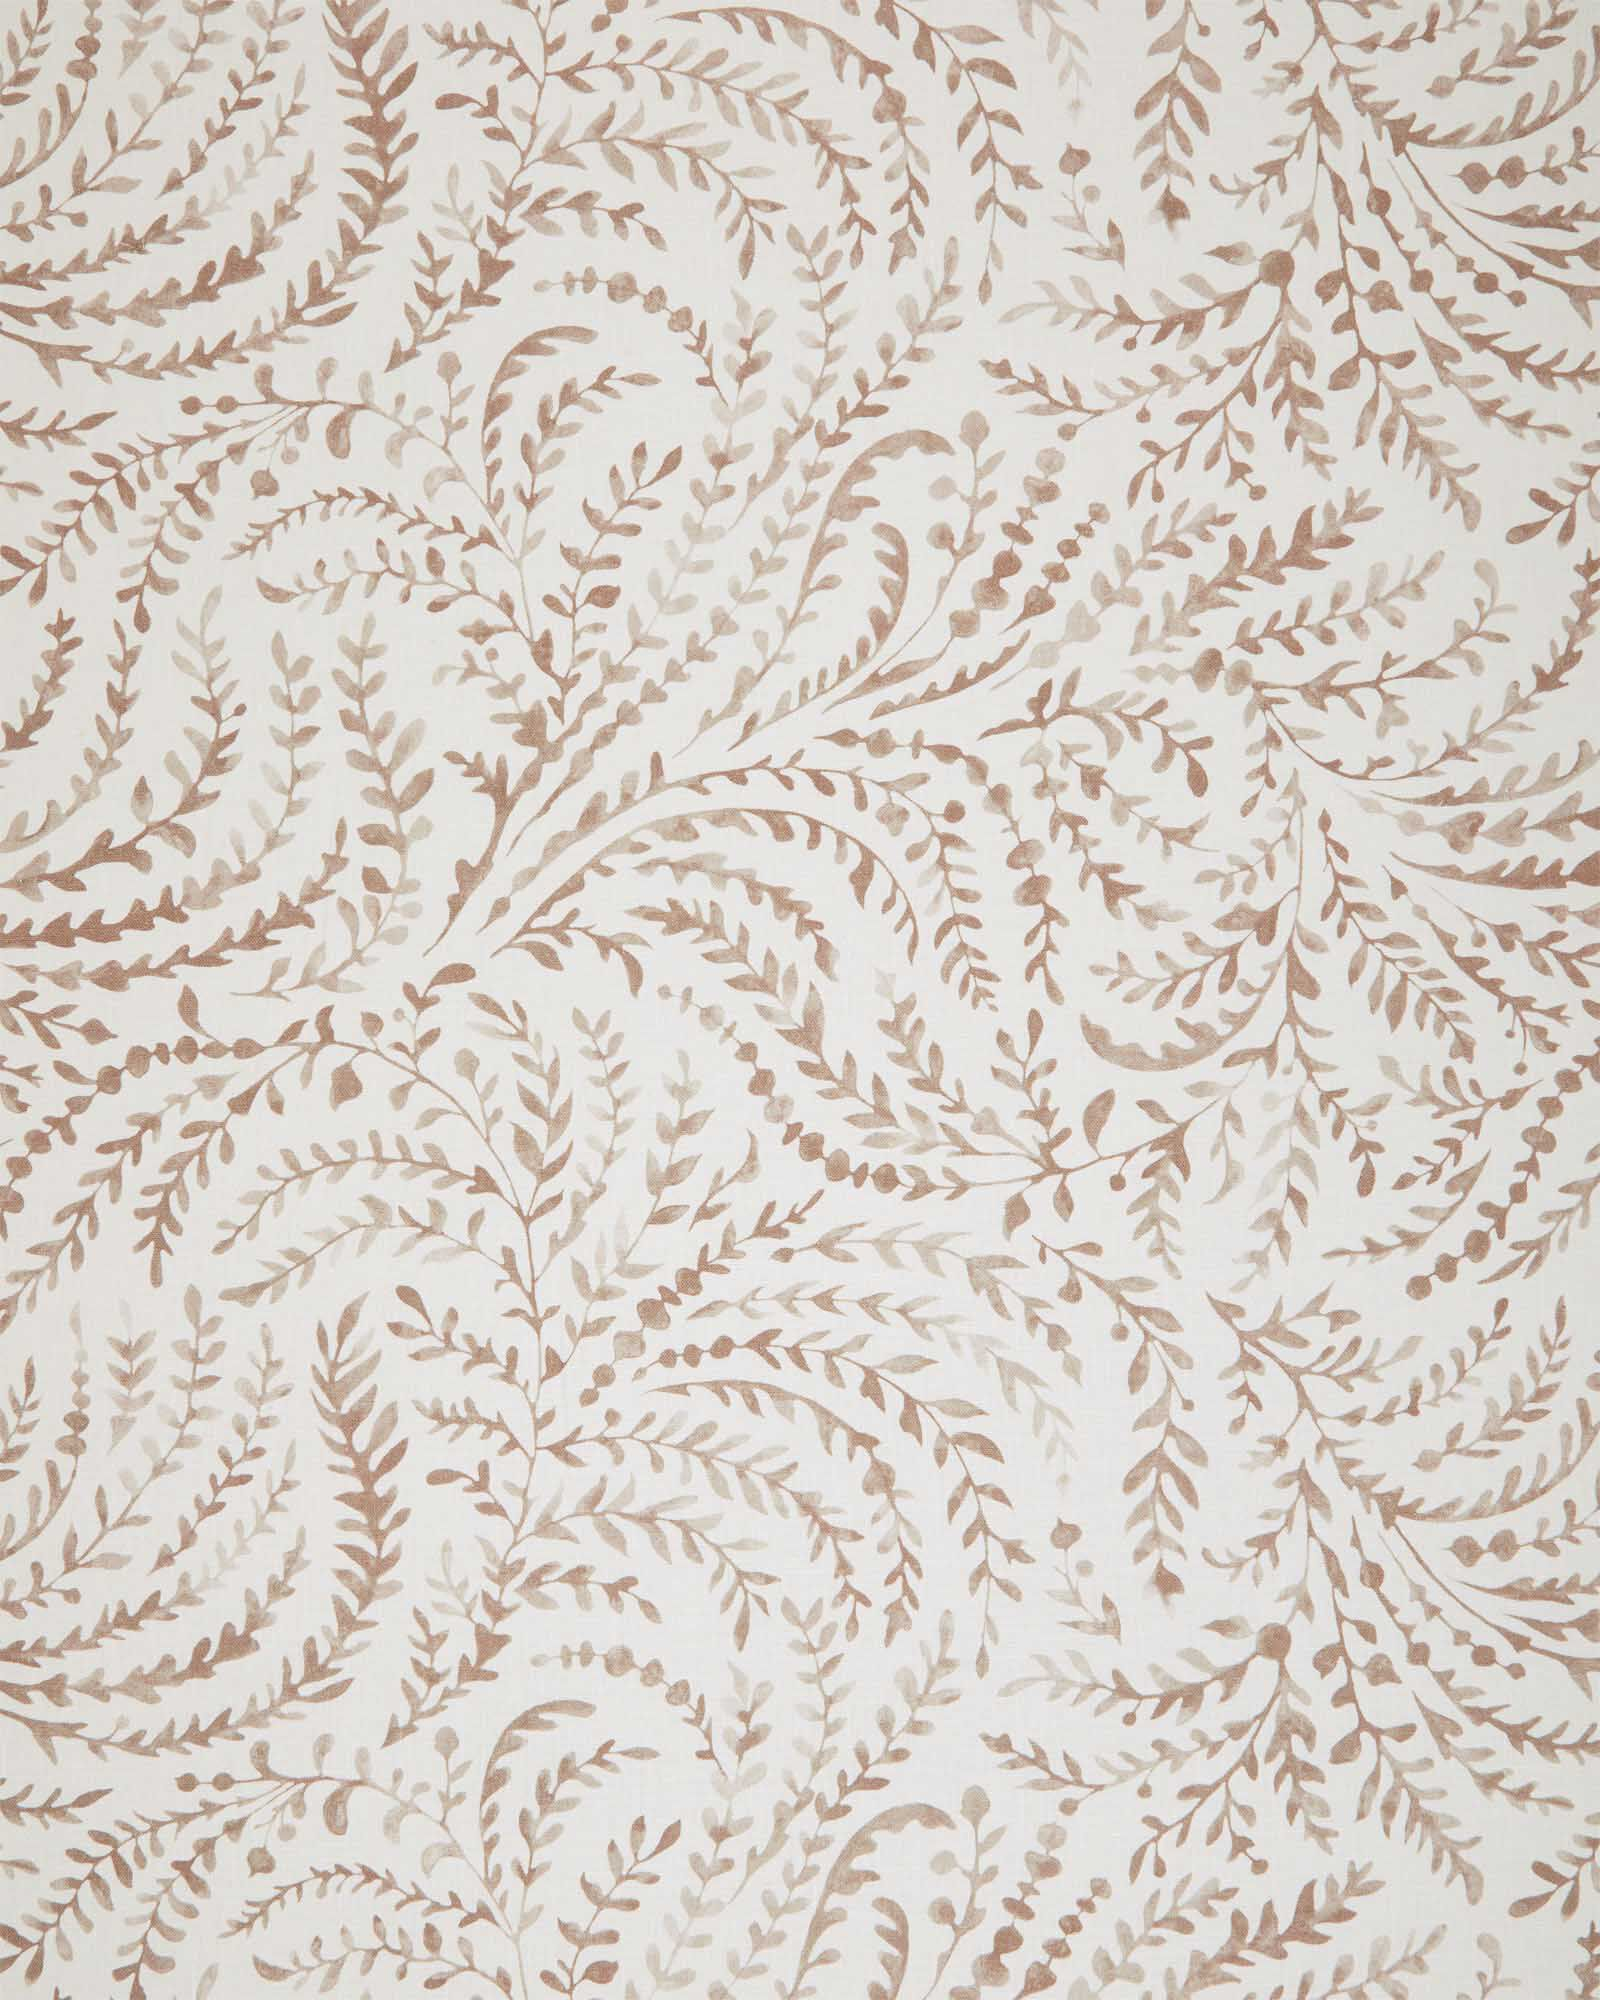 Fabric by the Yard - Priano Linen, Mink